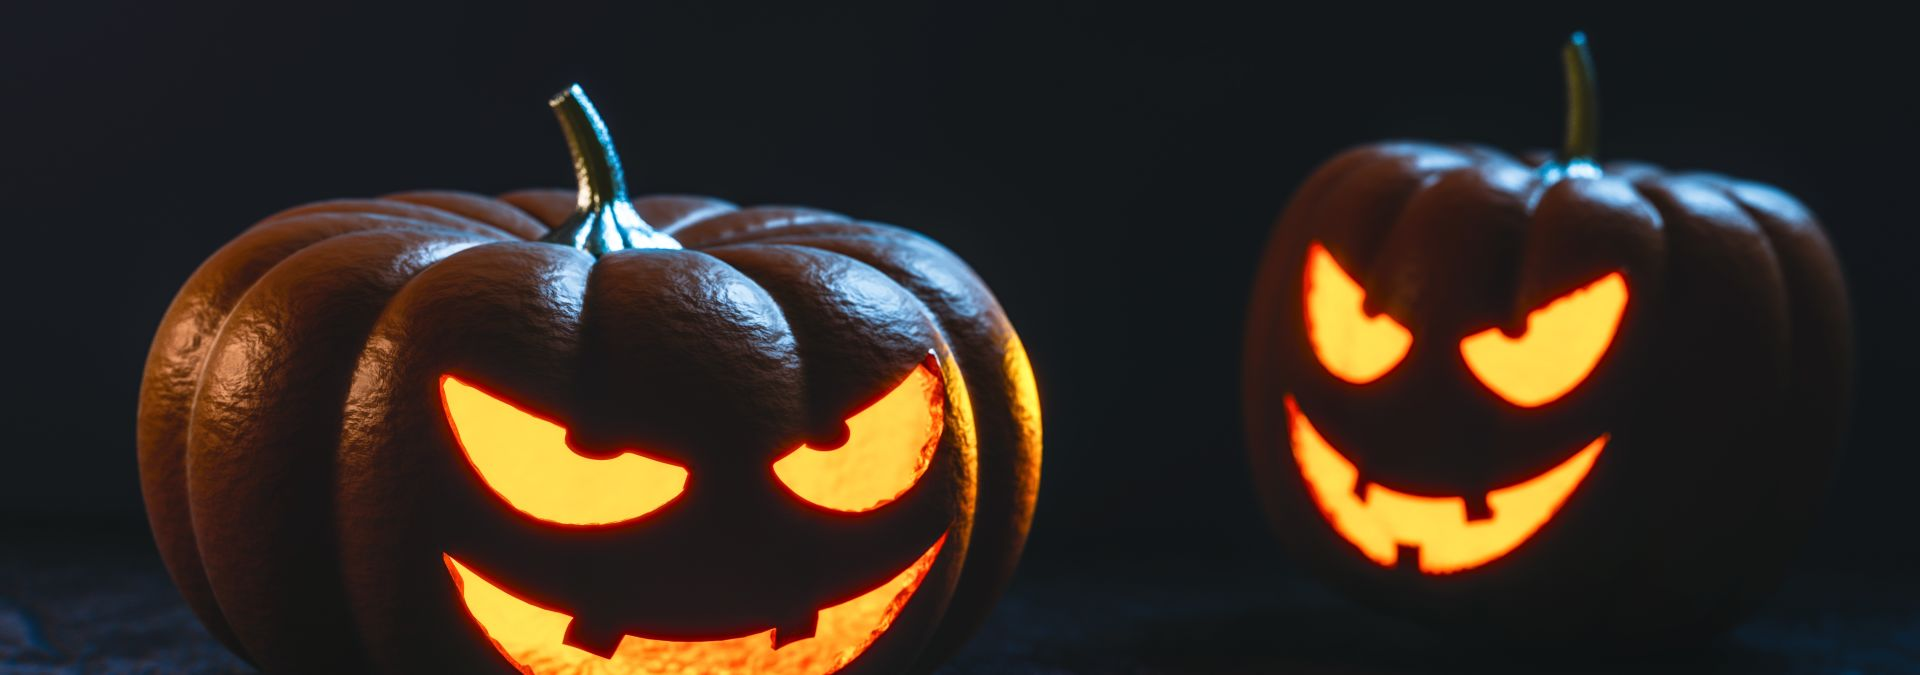 Knoxville Halloween Events 2020 Knoxville Halloween Events | Free & Family Friendly